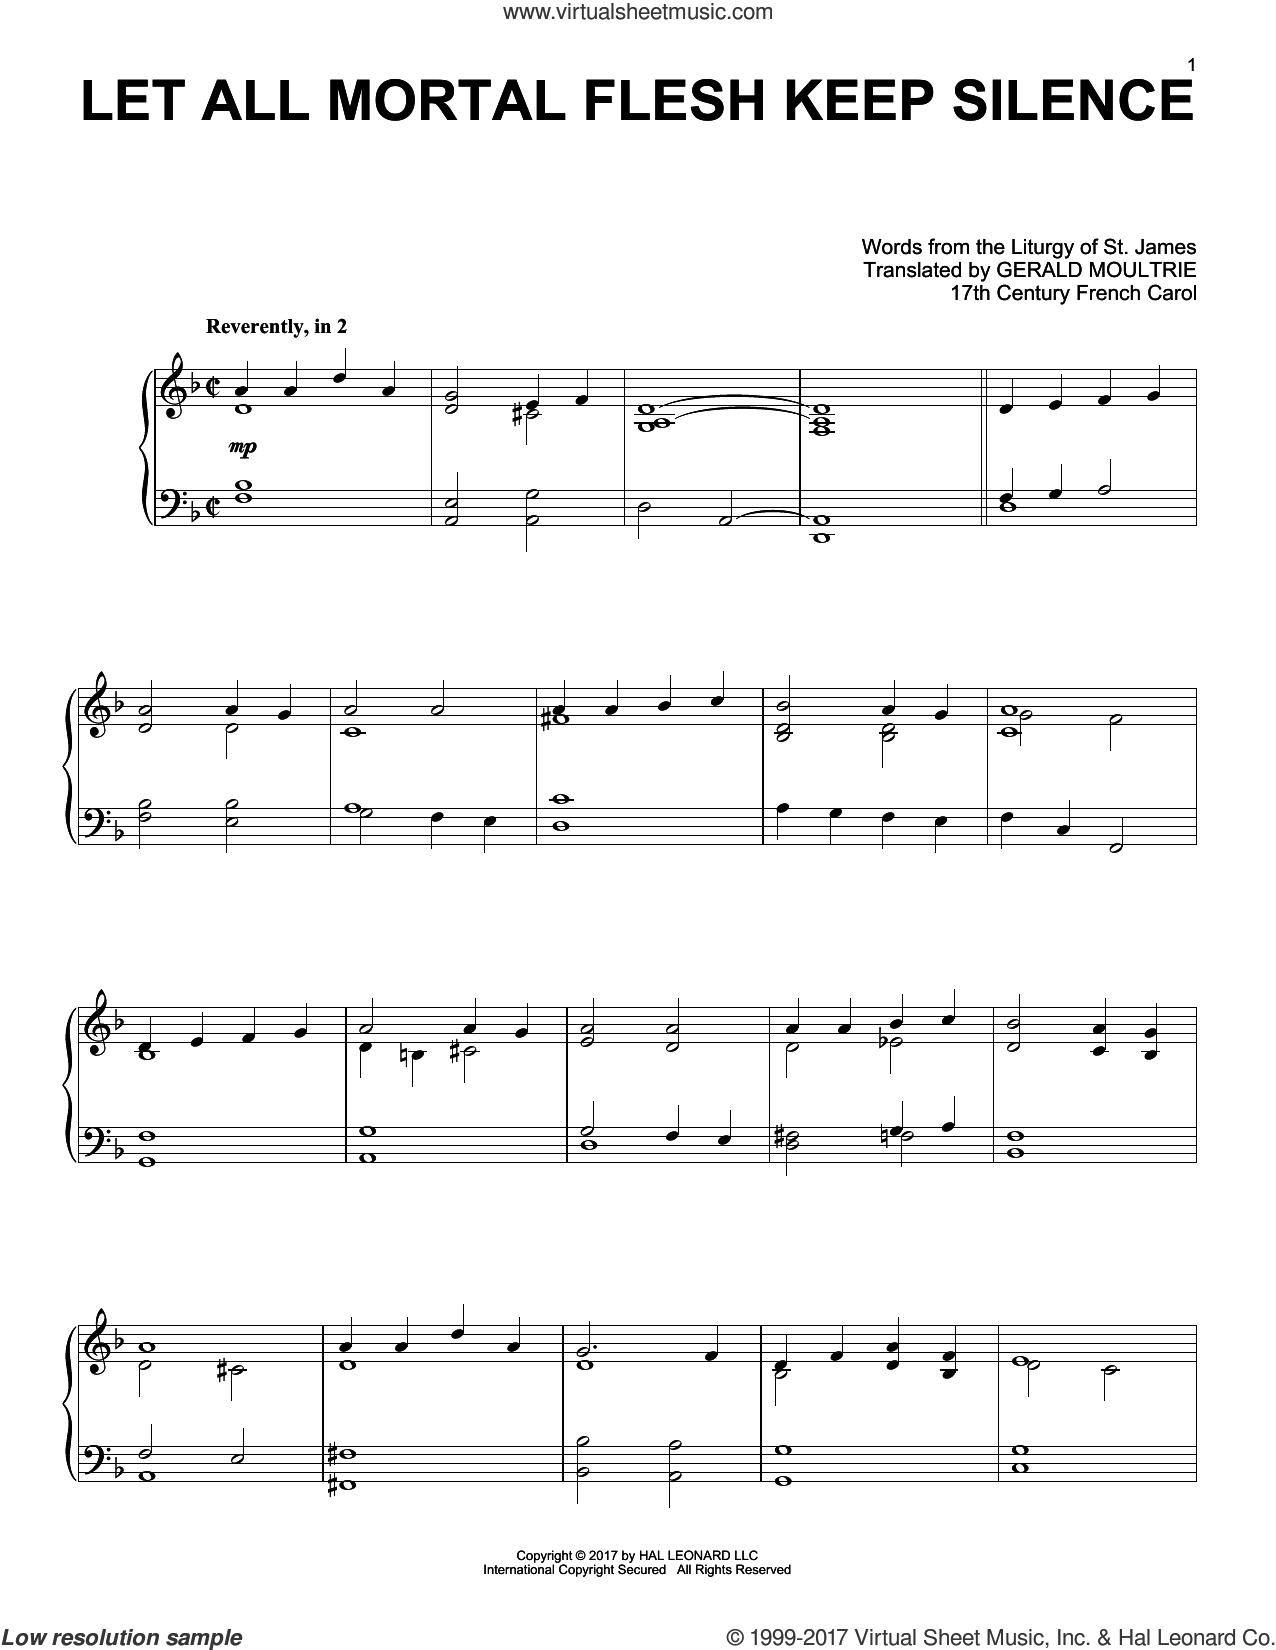 Let All Mortal Flesh Keep Silence sheet music for piano solo by Anonymous, Miscellaneous, Gerard Moultrie and Liturgy Of St. James, intermediate skill level